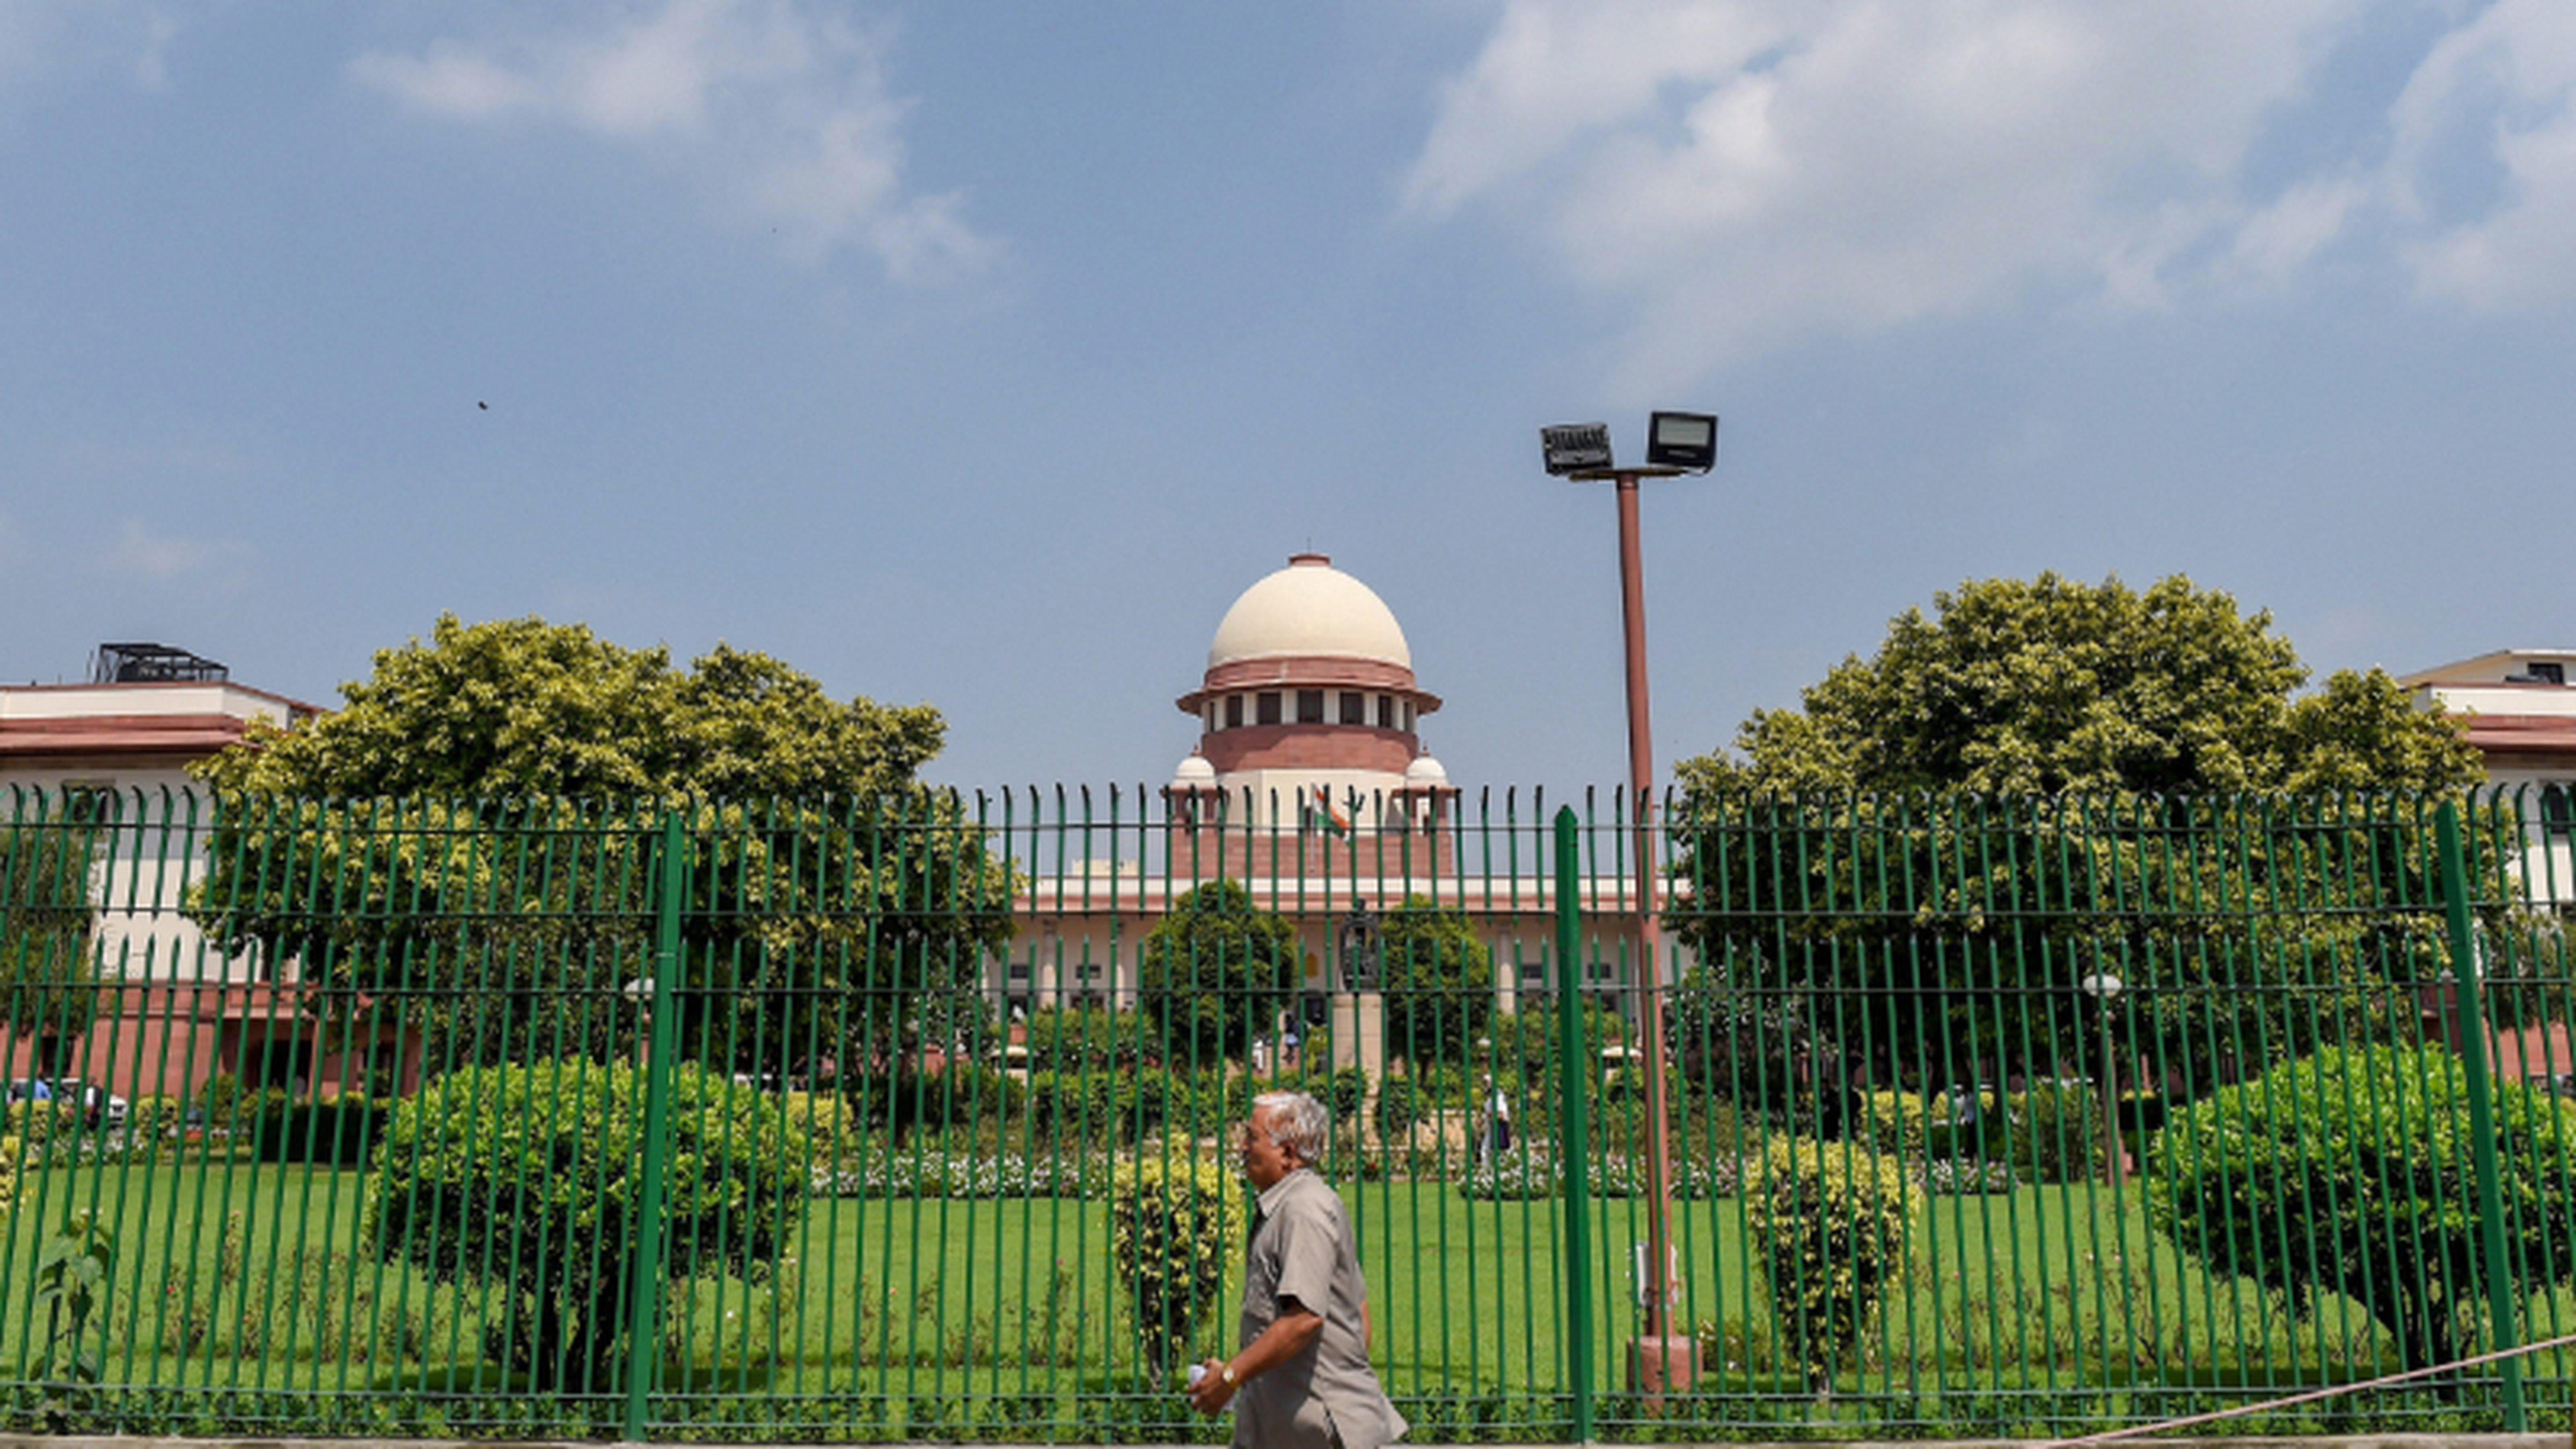 The tactic of keeping FIRs hanging over citizens for years and use it as a tool of harassment came under the glare of the Supreme Court of India on Tuesday.